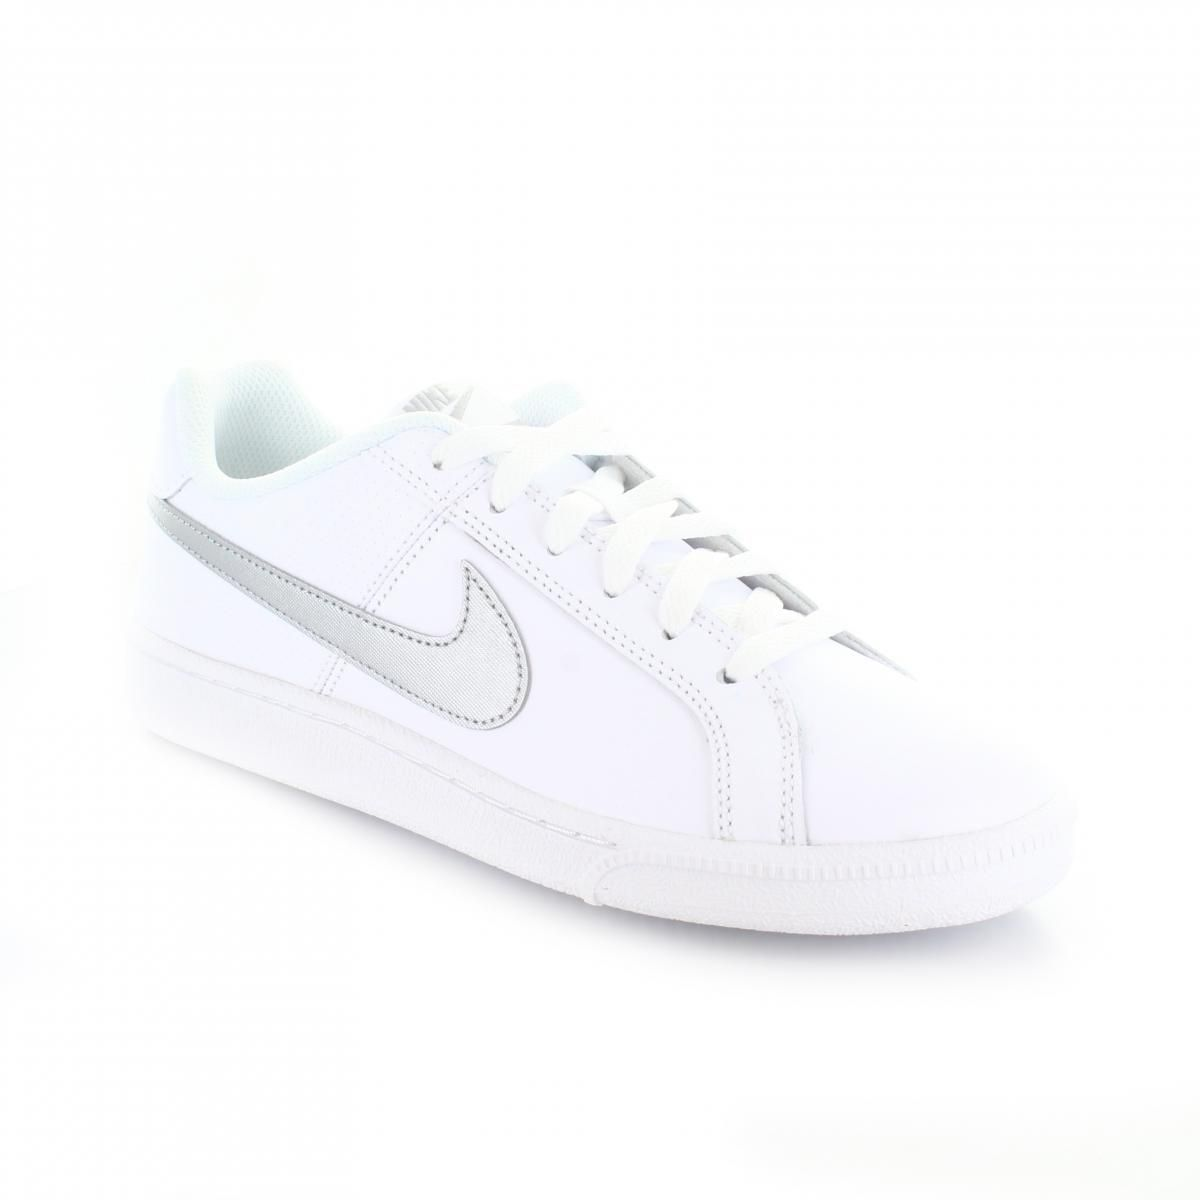 check out 6f6c7 6e1a2 nike white sneakers tenis blancos mujer